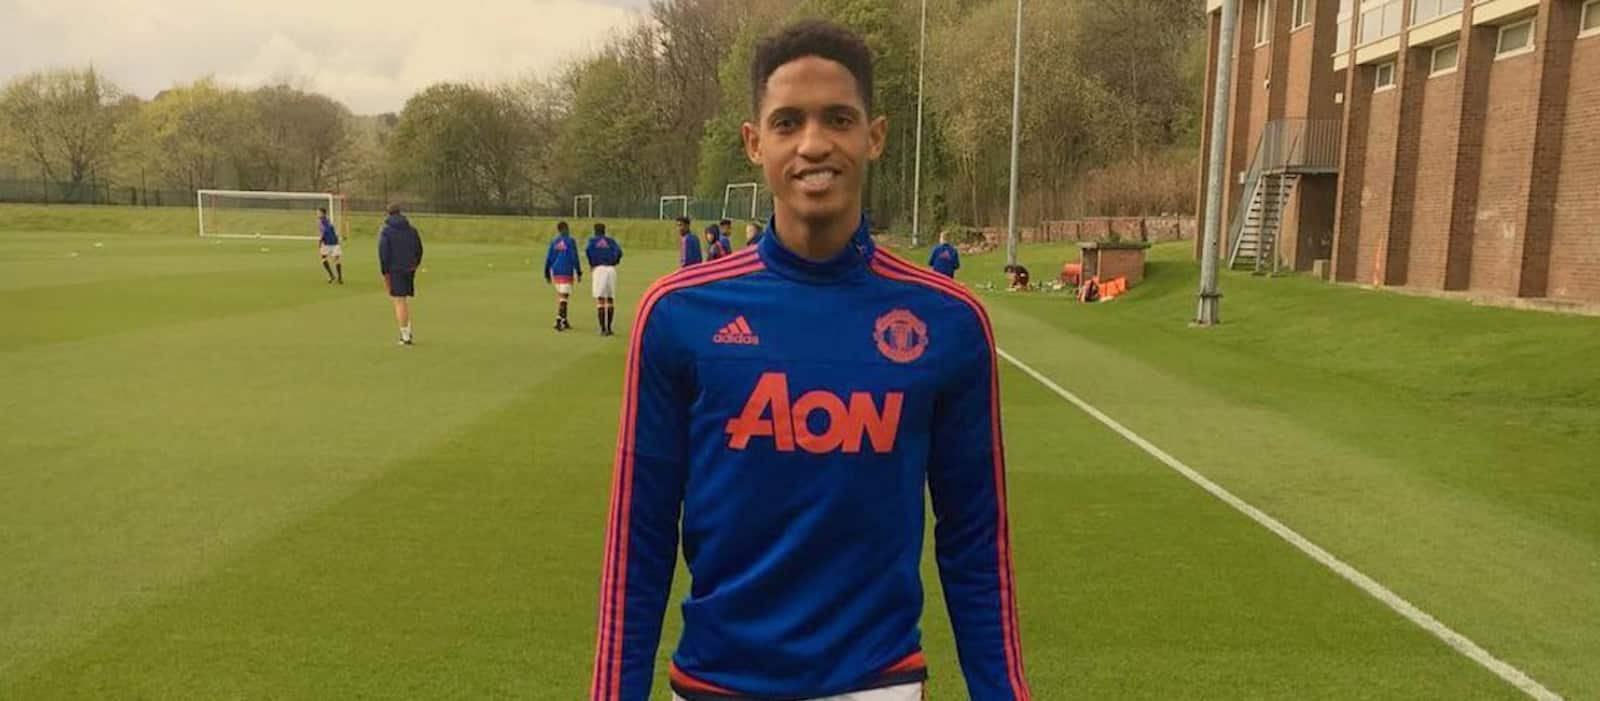 Keith Groeneveld back in Belgium after Manchester United trial